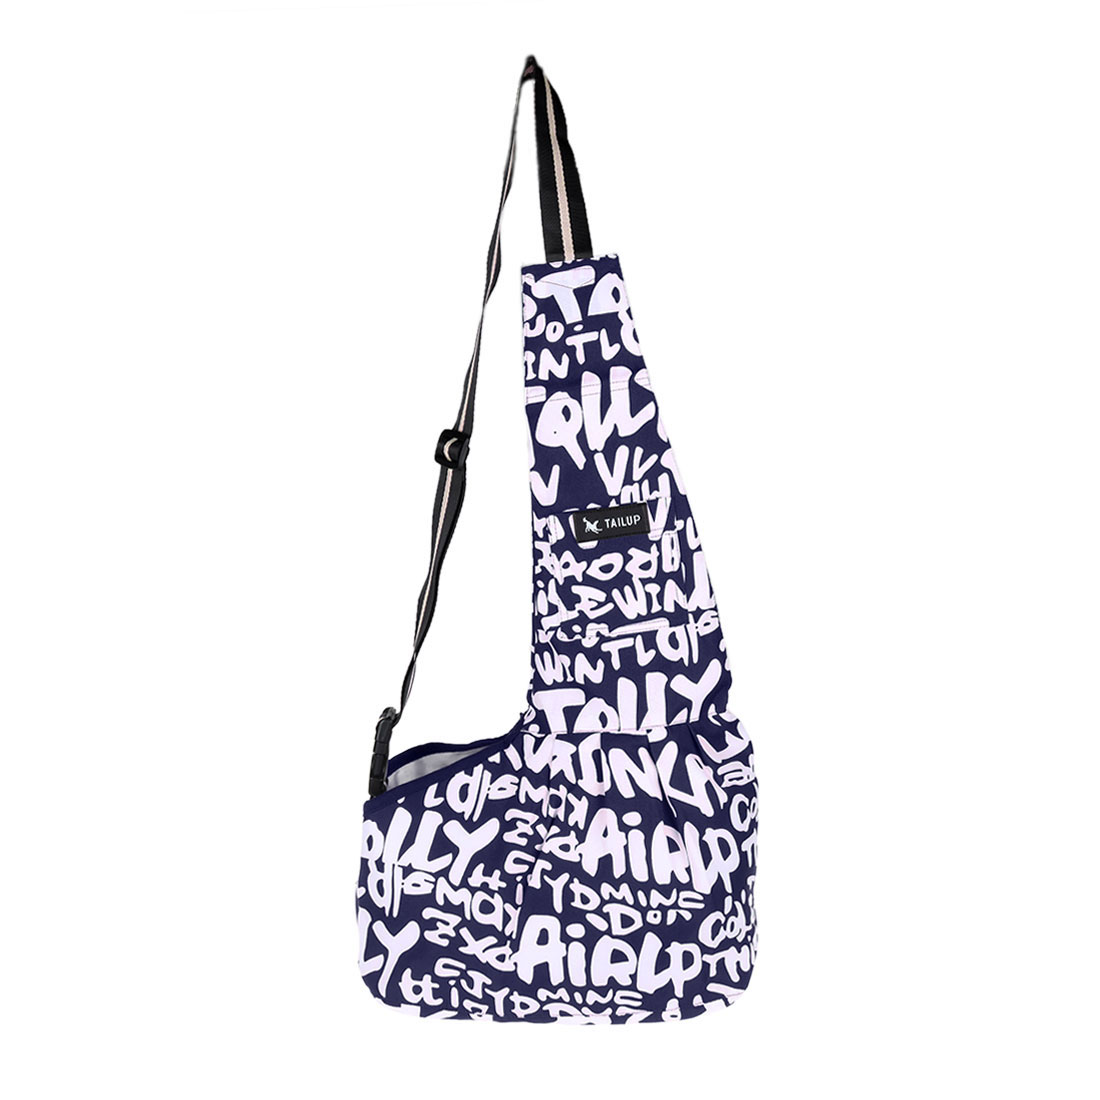 TAILUP Authorized Small Dog Cat Carrier Bag Washable Soft Shoulder Blue Letter S